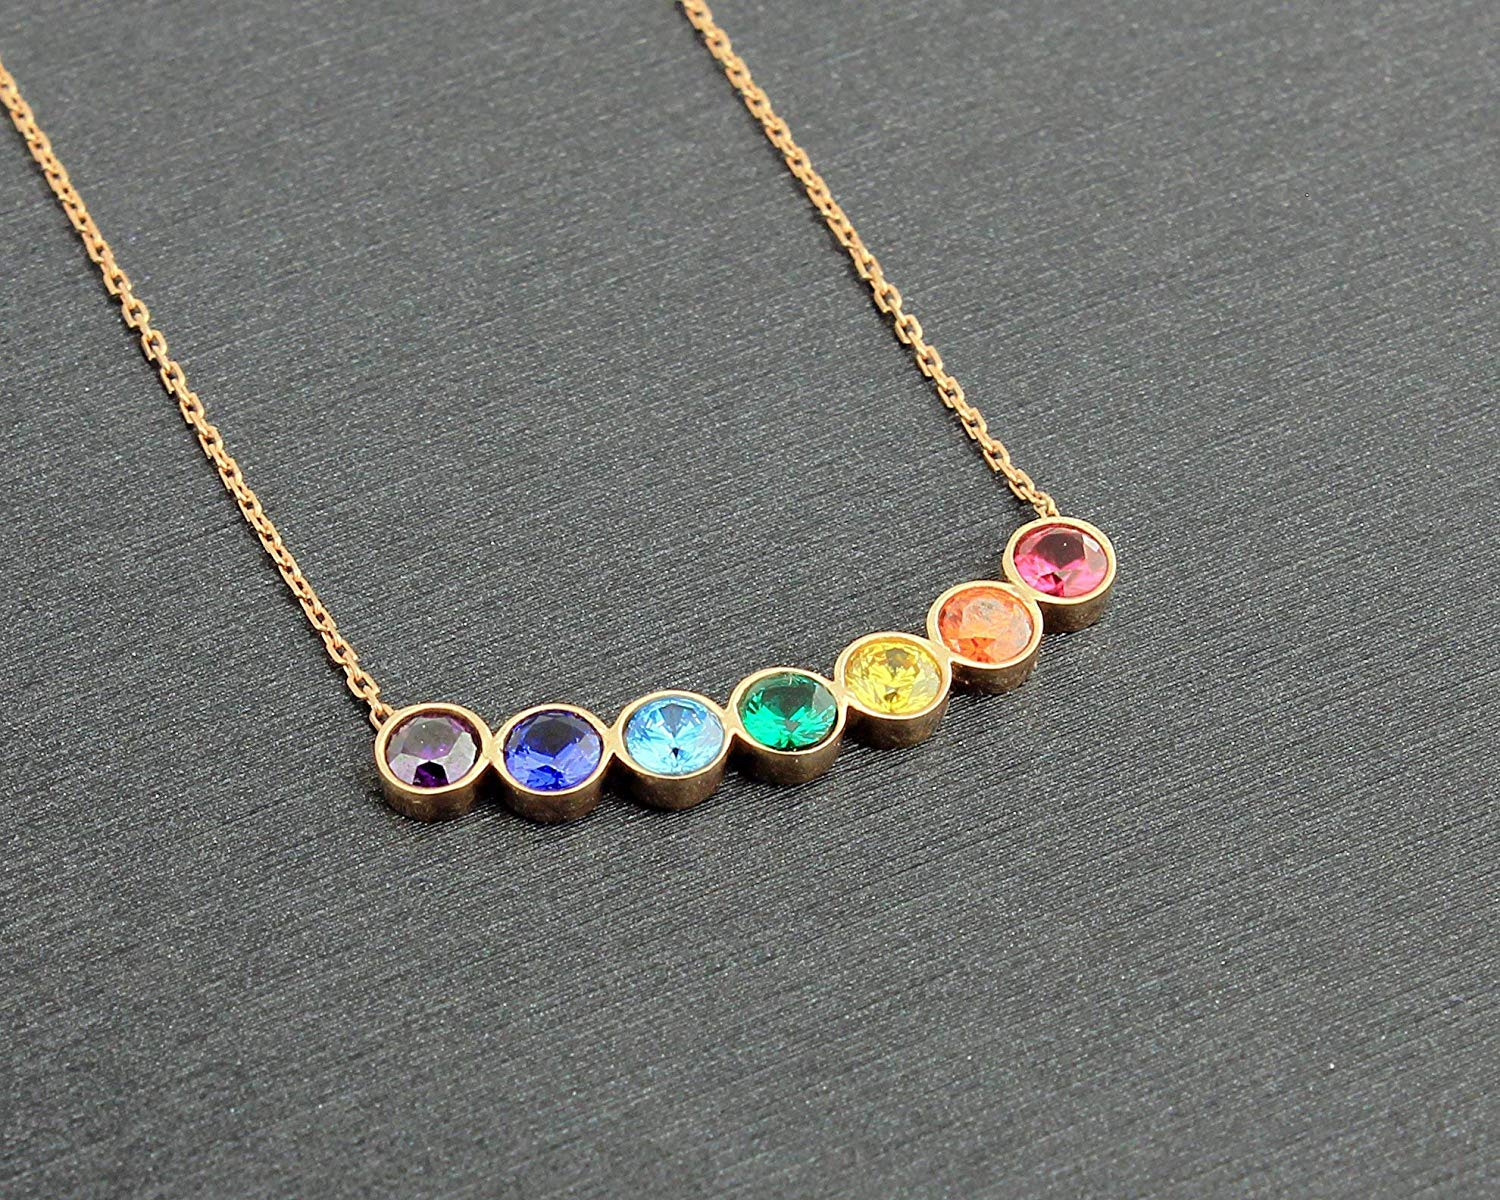 Meditation Necklace Chakra Necklace Chakra Stone Necklace with 18 Silver Plated Chain Chakra Point Necklace Chakra Jewelry